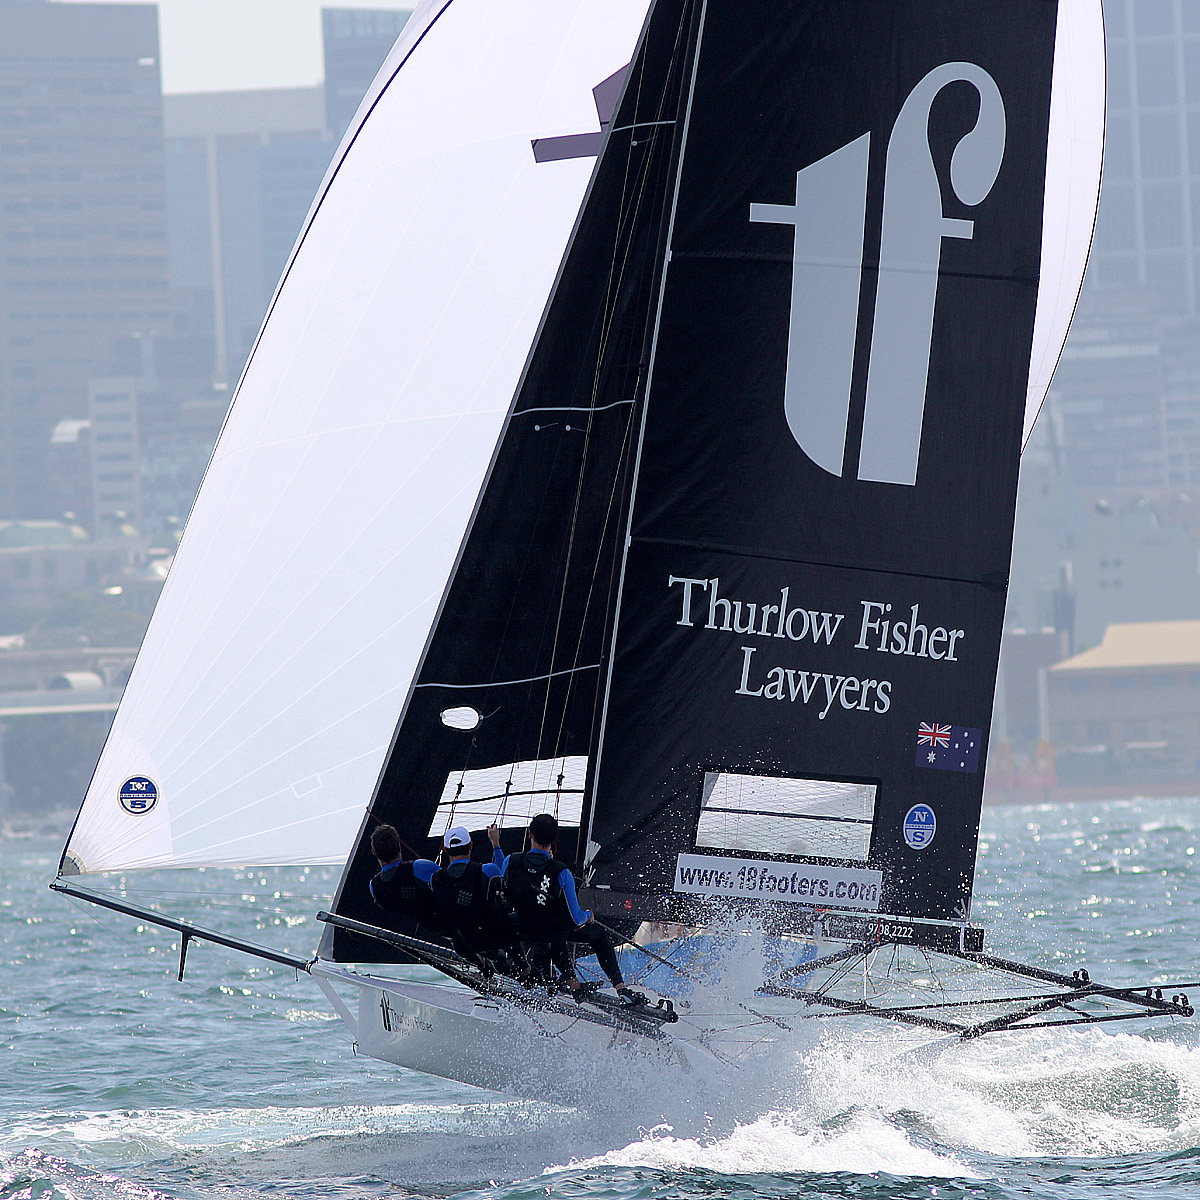 thurlow-fisher-lawyers-on-the-spinnaker-run-from-beashel-buoy-to-clark-island